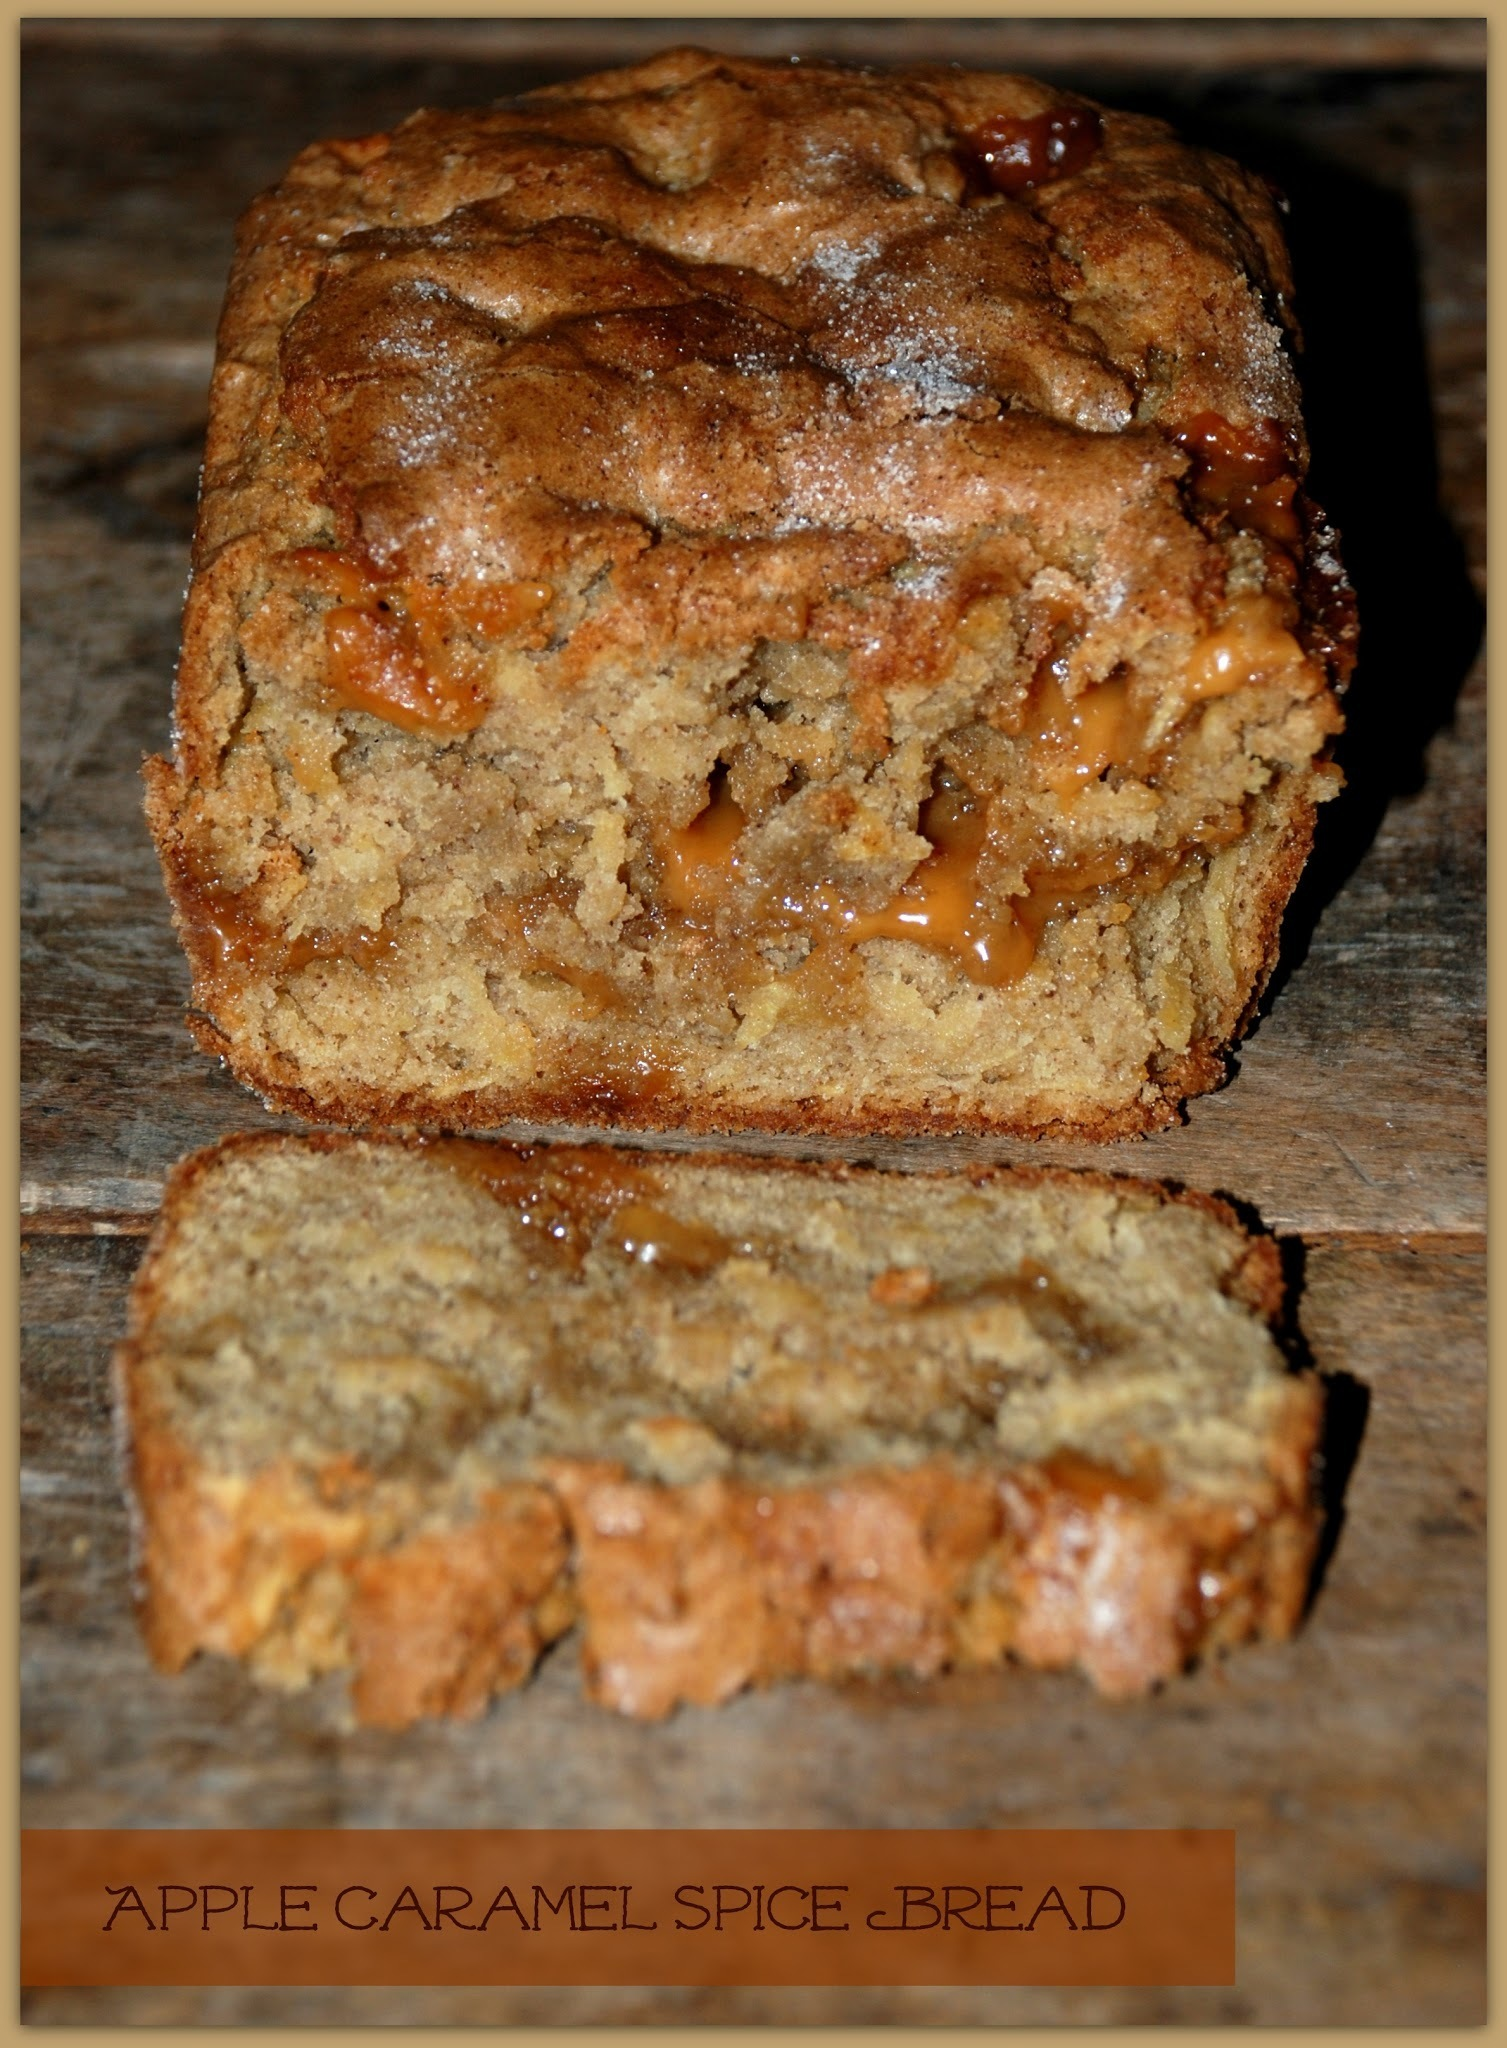 Apple Caramel Spice Bread